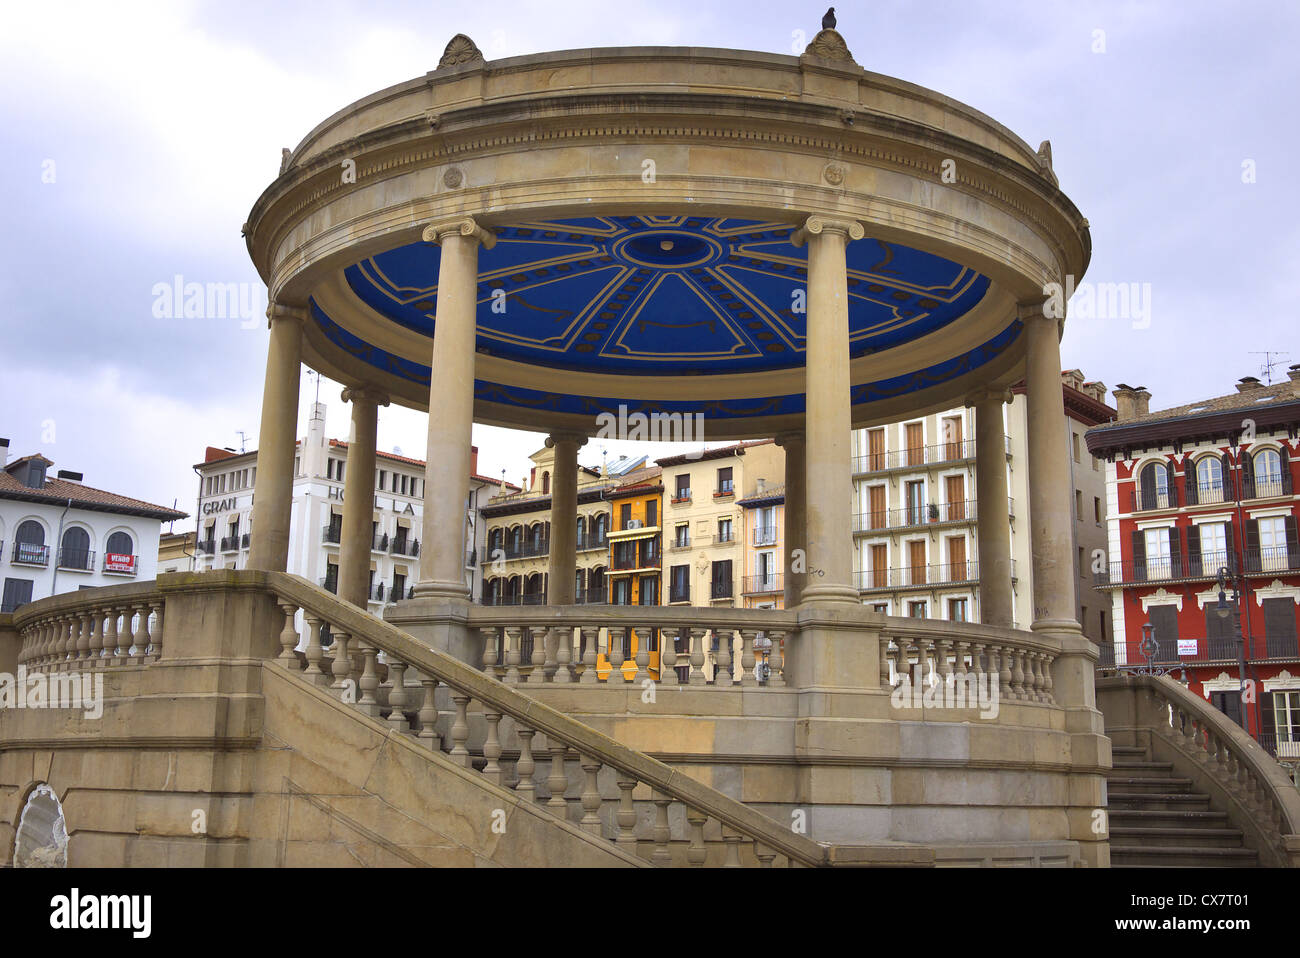 The bandstand on the Plaza del Castillo in Pamplona, Spain. Stock Photo